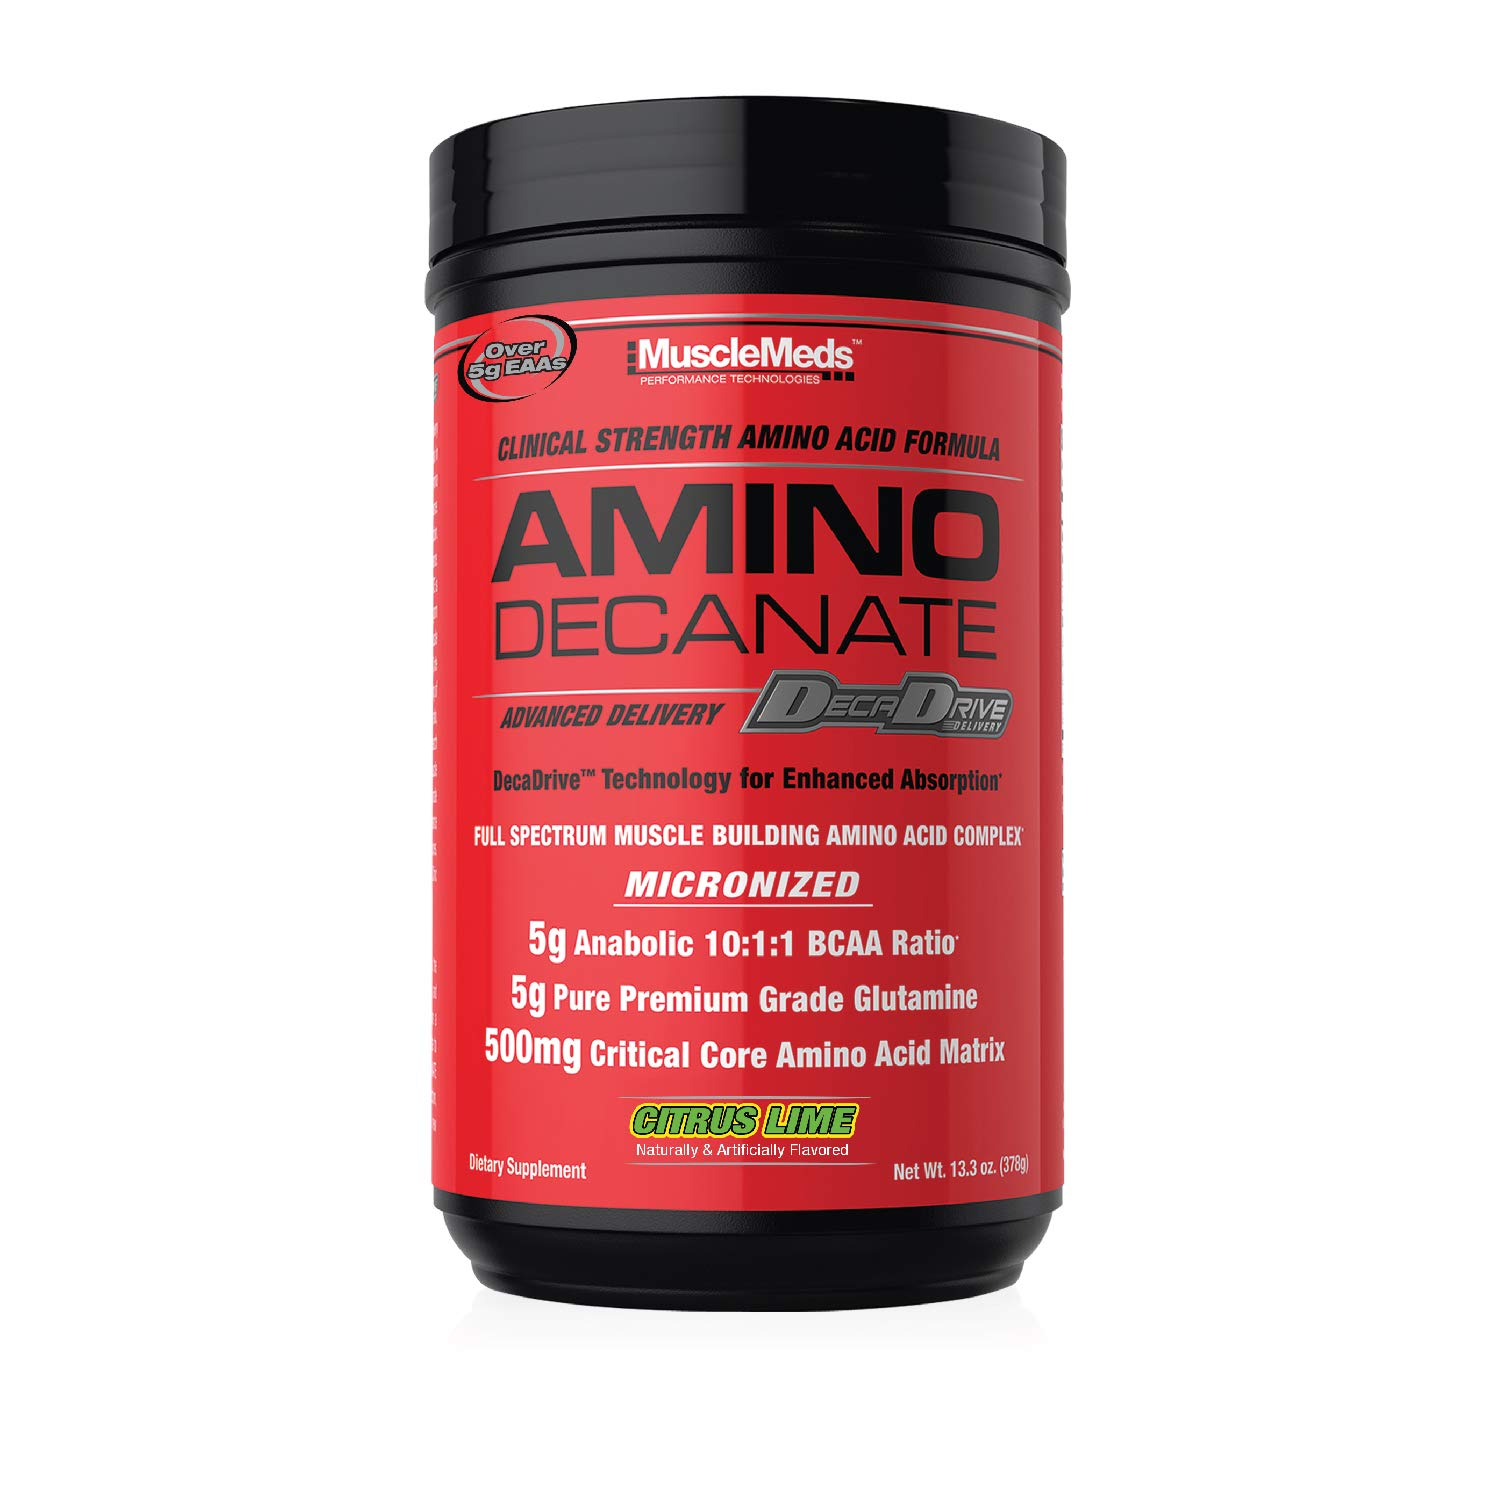 MuscleMeds Amino Decanate, Citrus Lime, 360 Grams